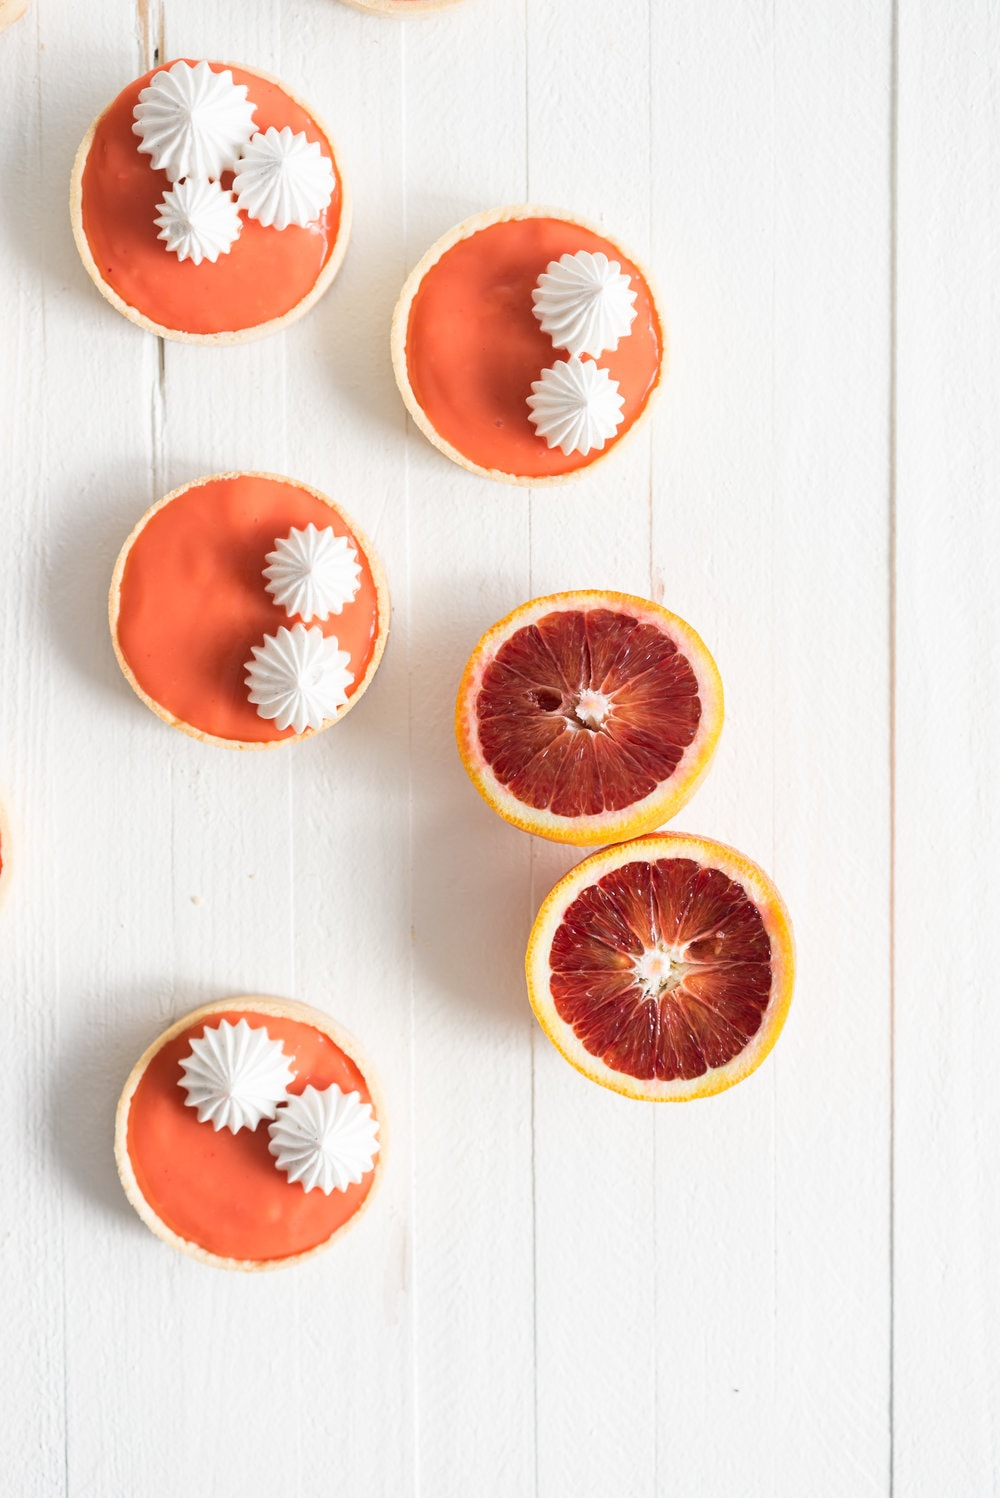 Blood orange meringue tart - sweet pastry filled with a blood orange curd and topped with a swiss meringue